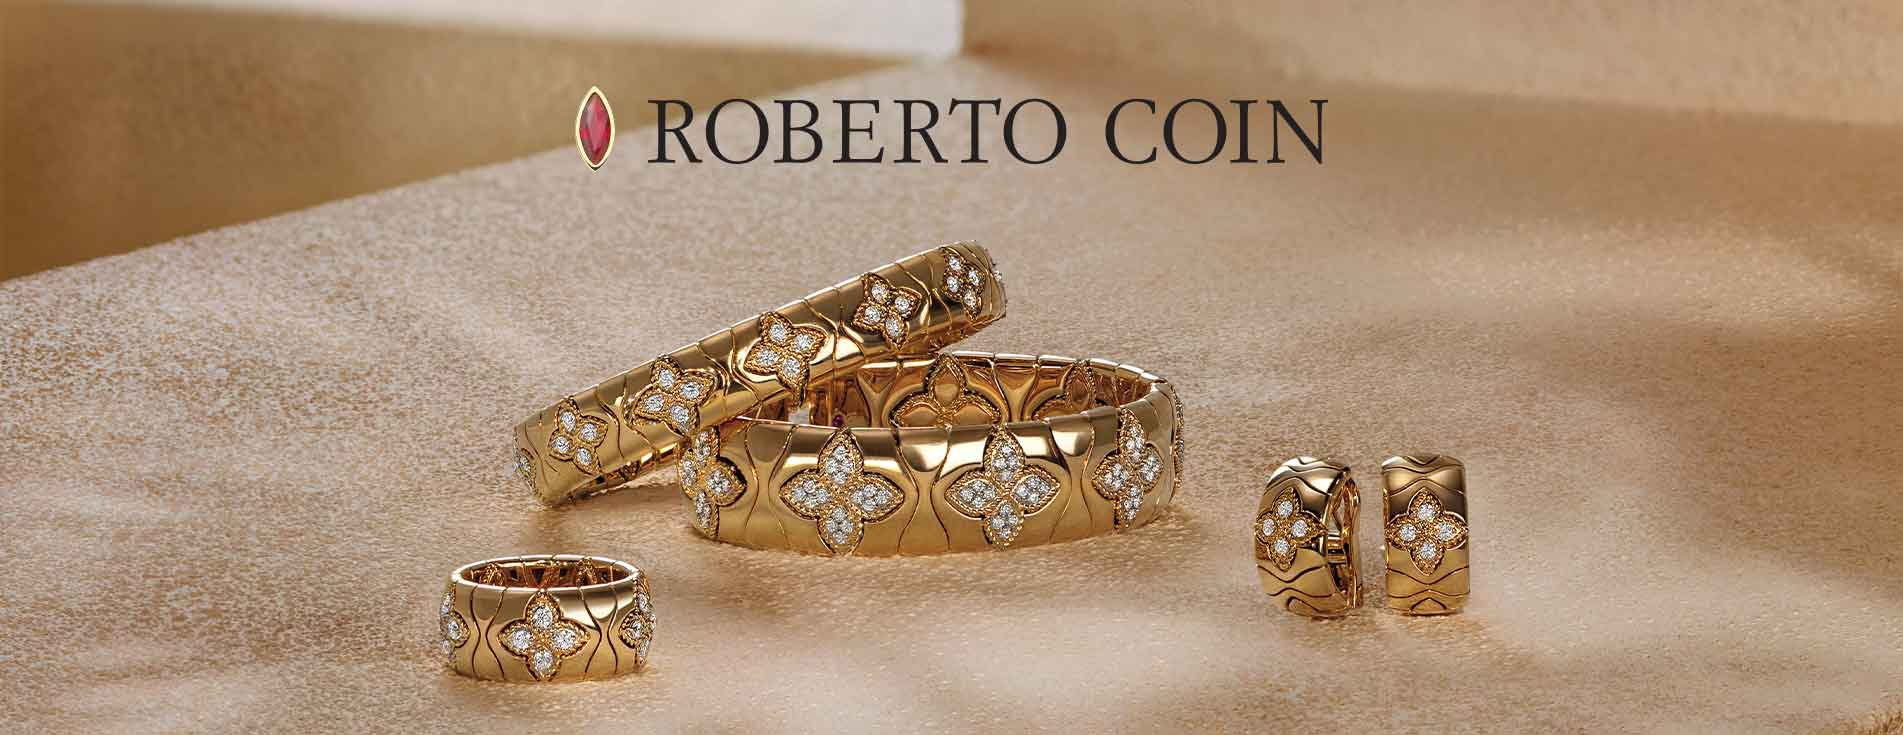 Roberto Coin Jewelry Collections at Louis Anthony Jewelers, Pittsburgh PA